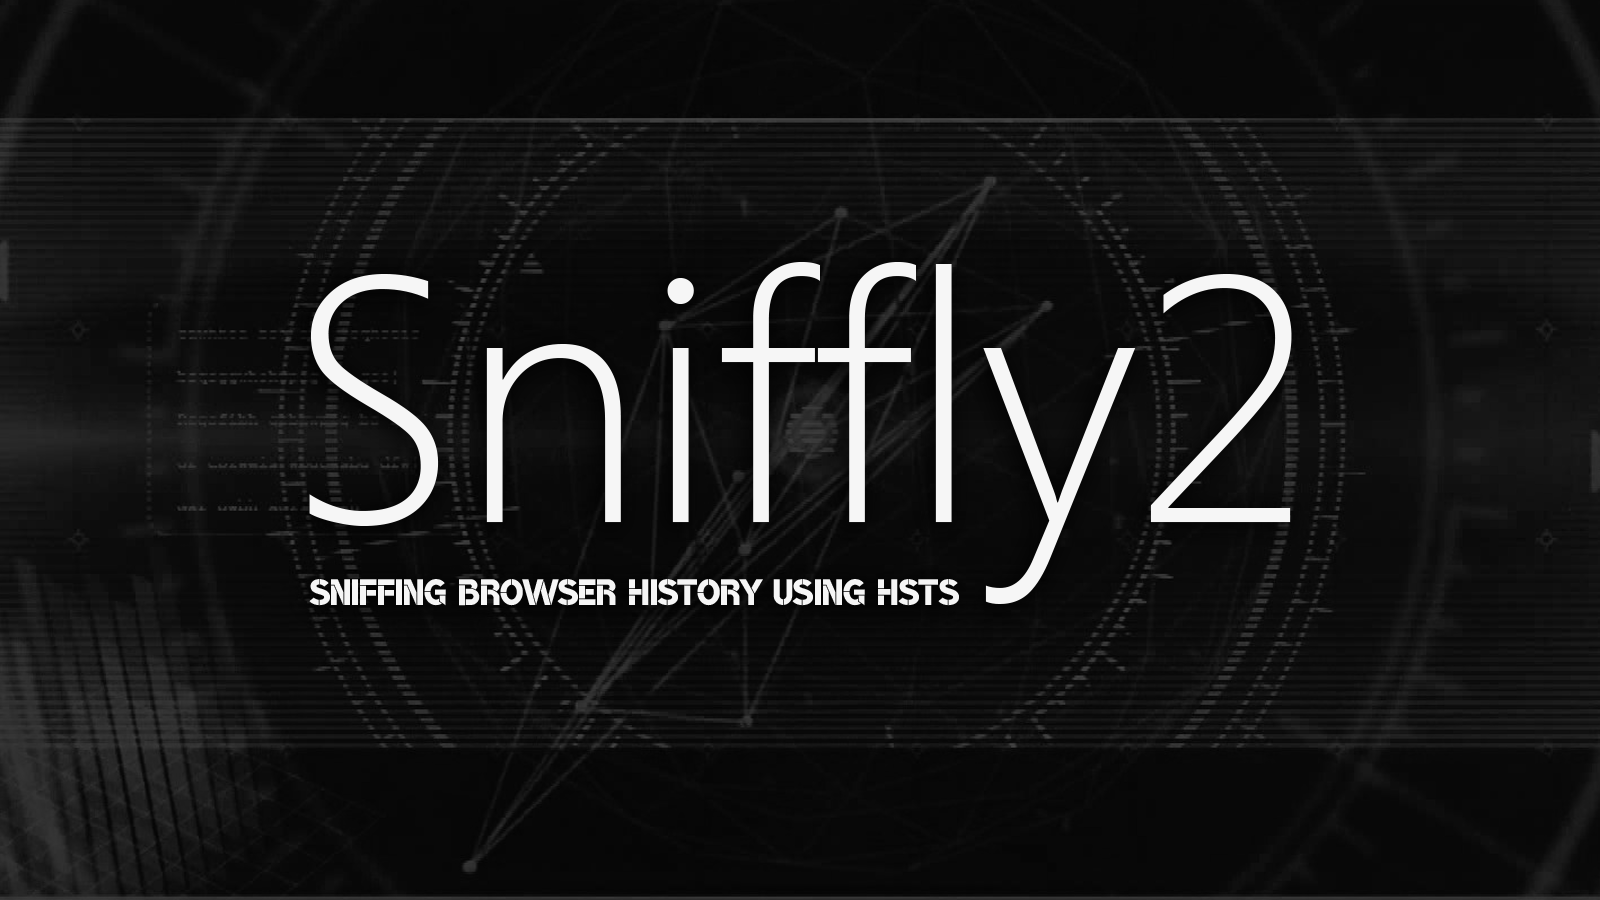 Sniffly2 - Sniffing Browser History Using HSTS